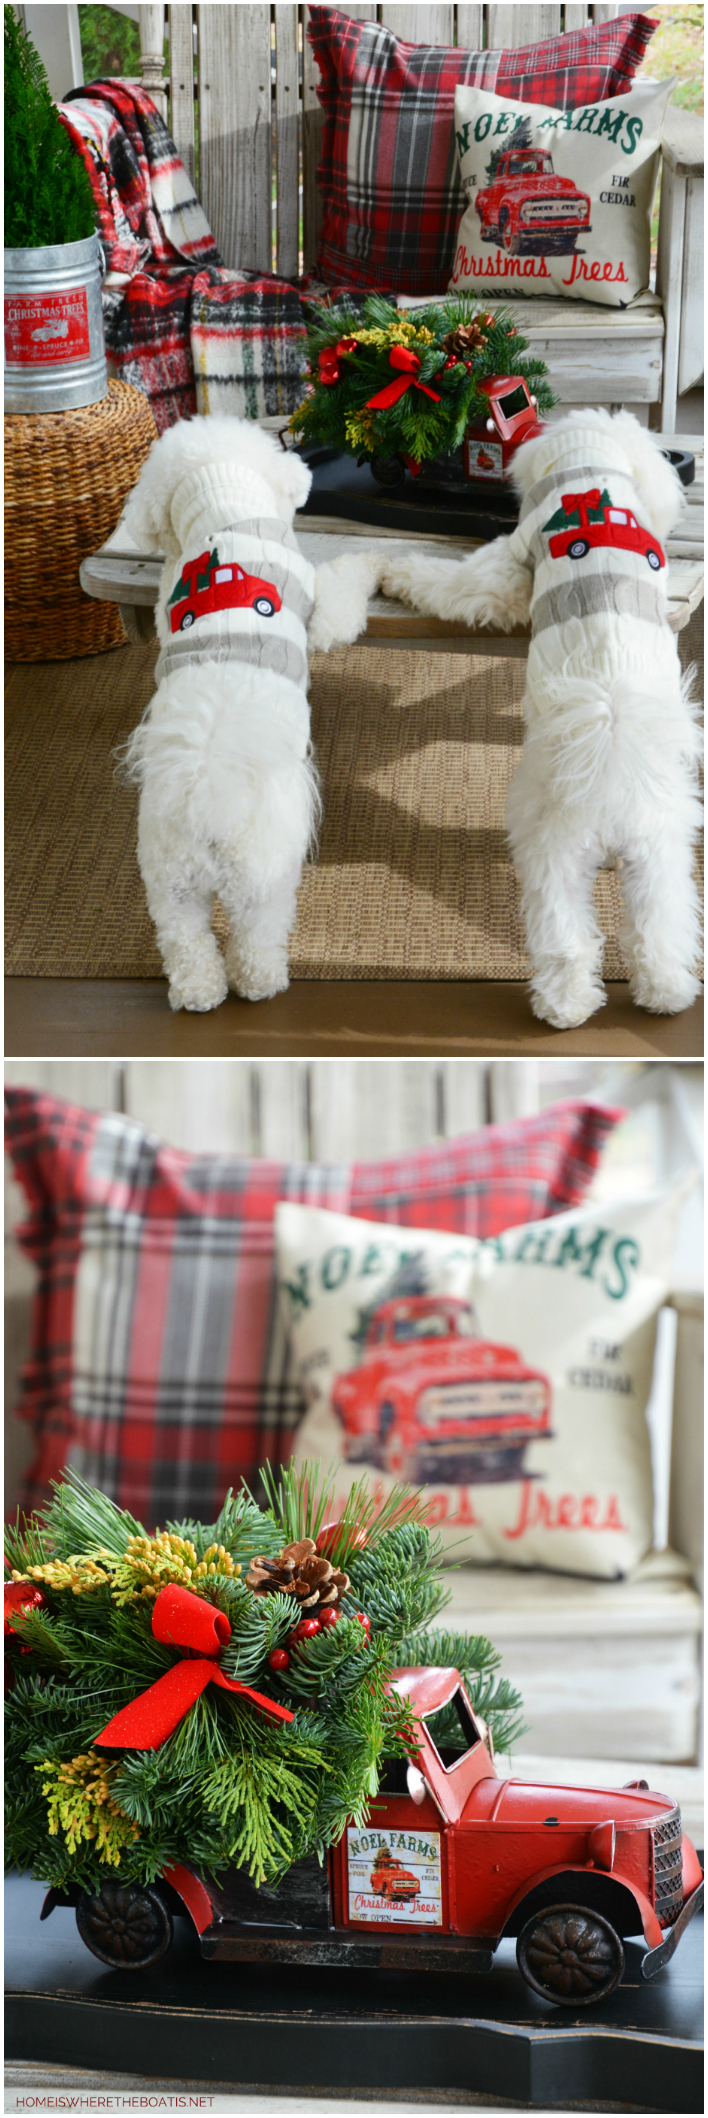 Christmas on the Porch truck centerpiece and dogs with Christmas tree in a truck sweaters | ©homeiswheretheboatis.net #christmas #truck #porch #dogs